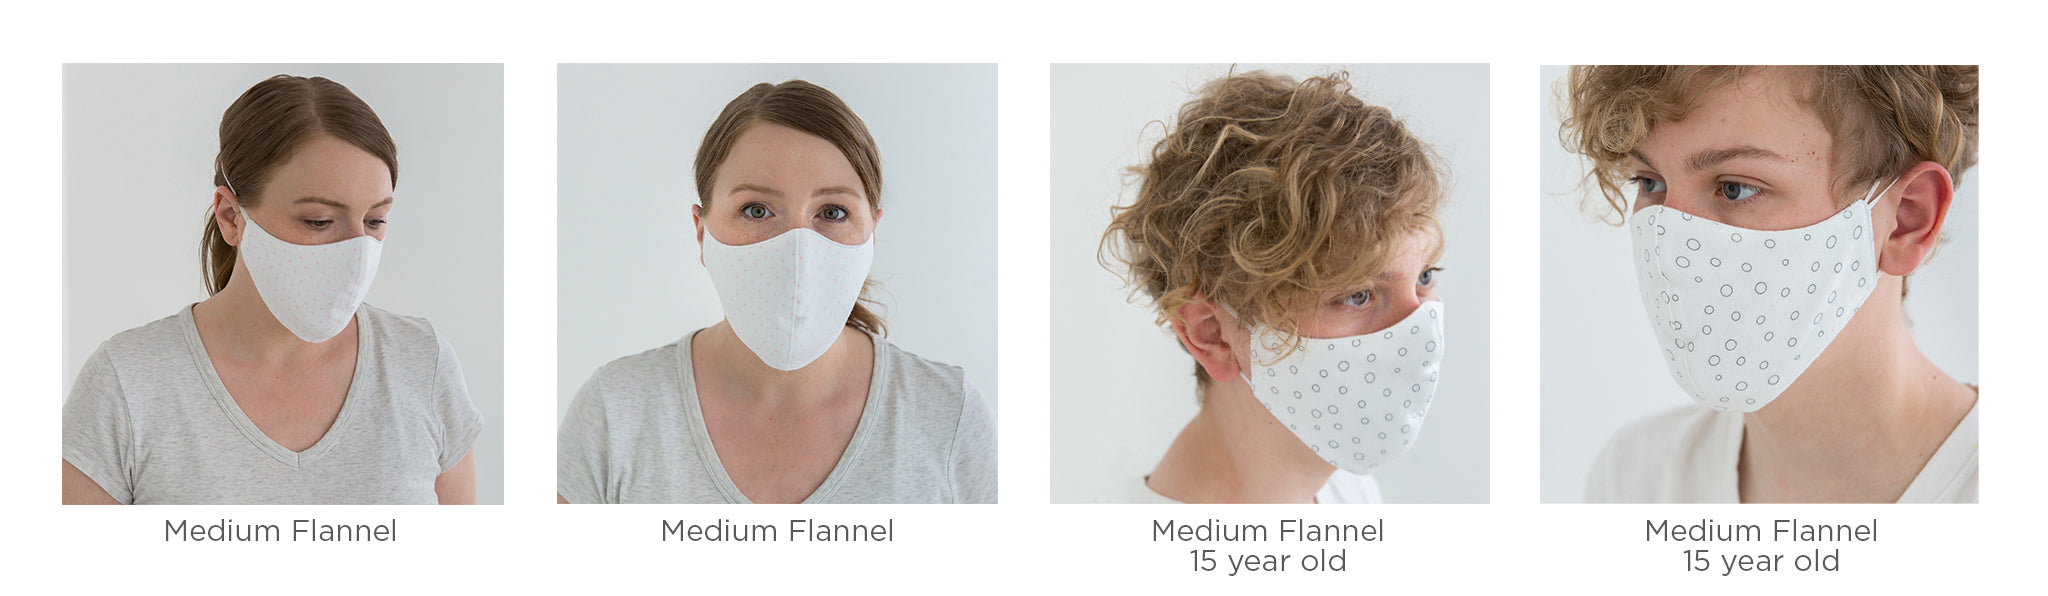 Medium Flannel Facemasks